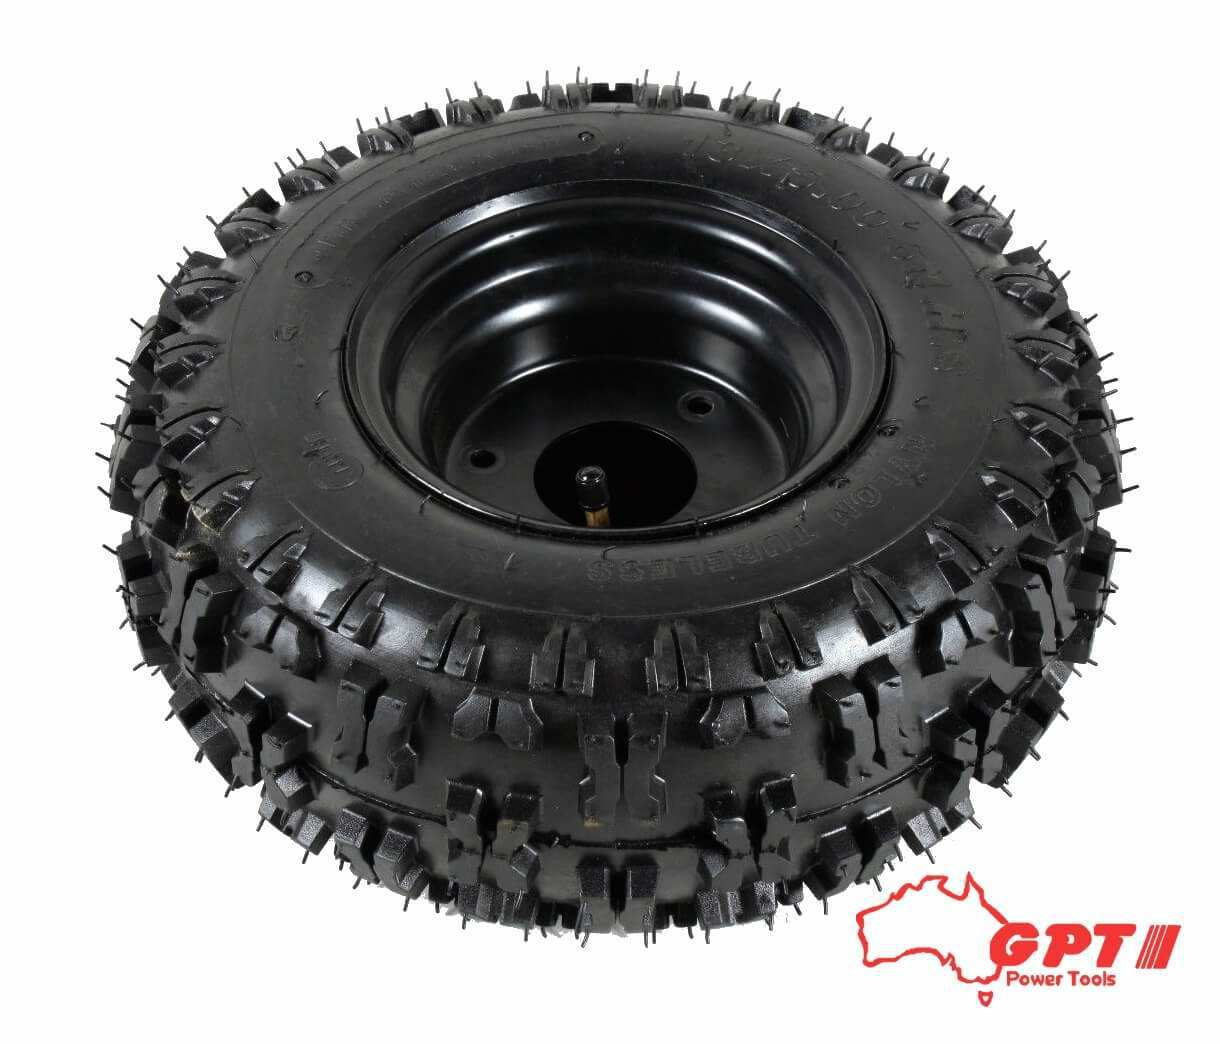 GPT NEW 6″ GO KART WHEEL AND TYRE WITH RIM AND TUBE 13 X 5.0 – 6X3.5